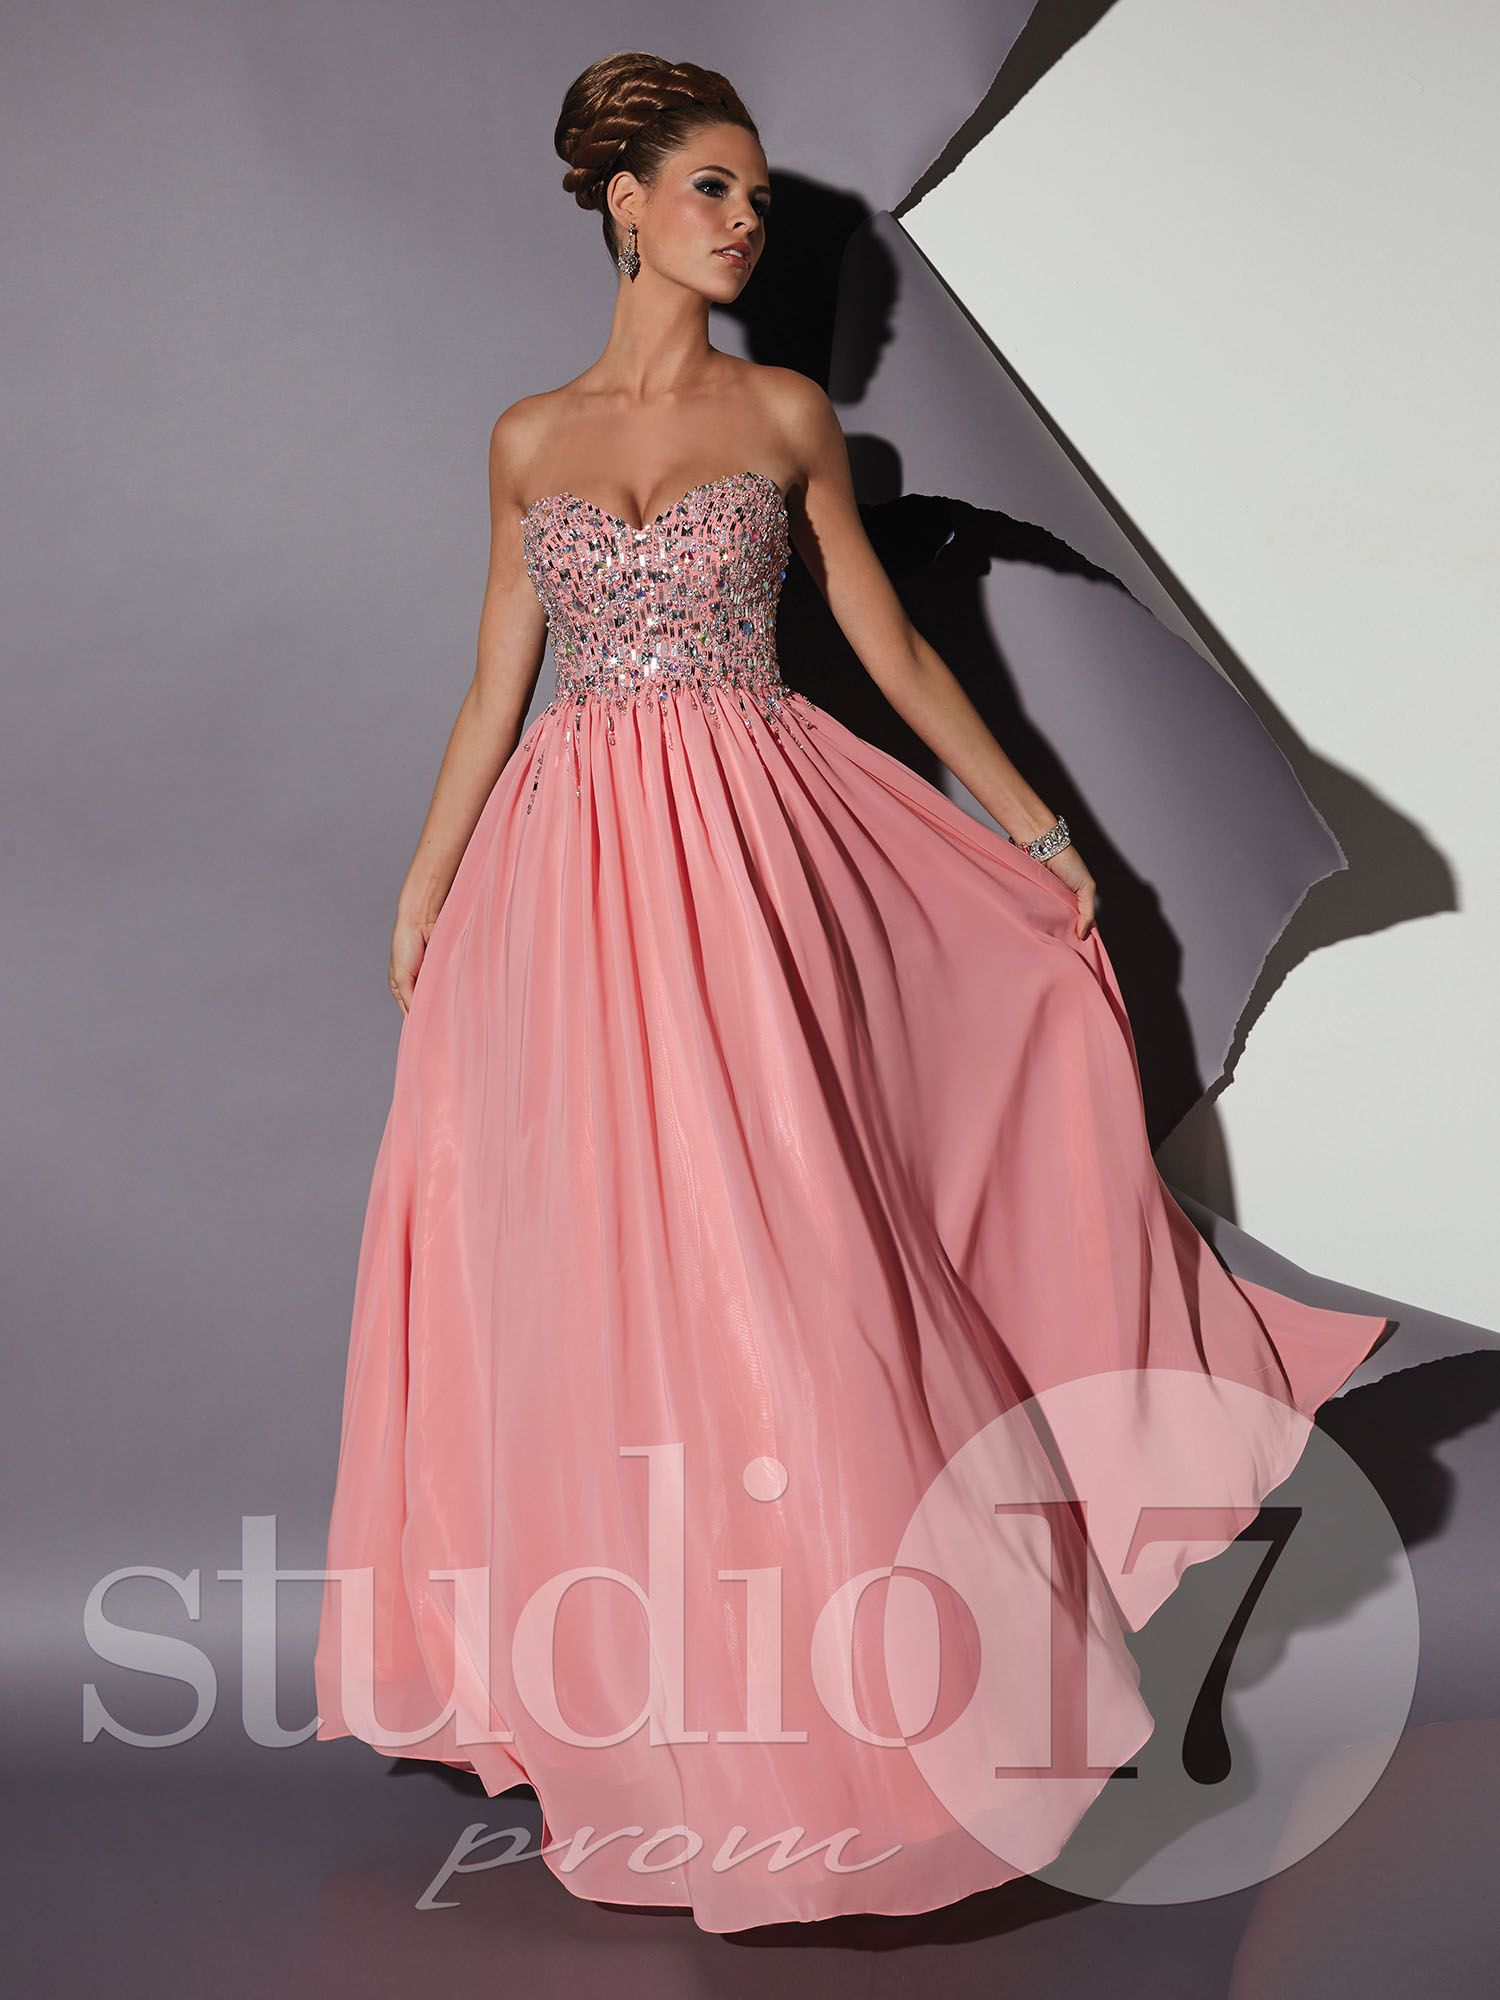 Studio17 Prom Dress Style 12452. Available at Chantilly Place ...